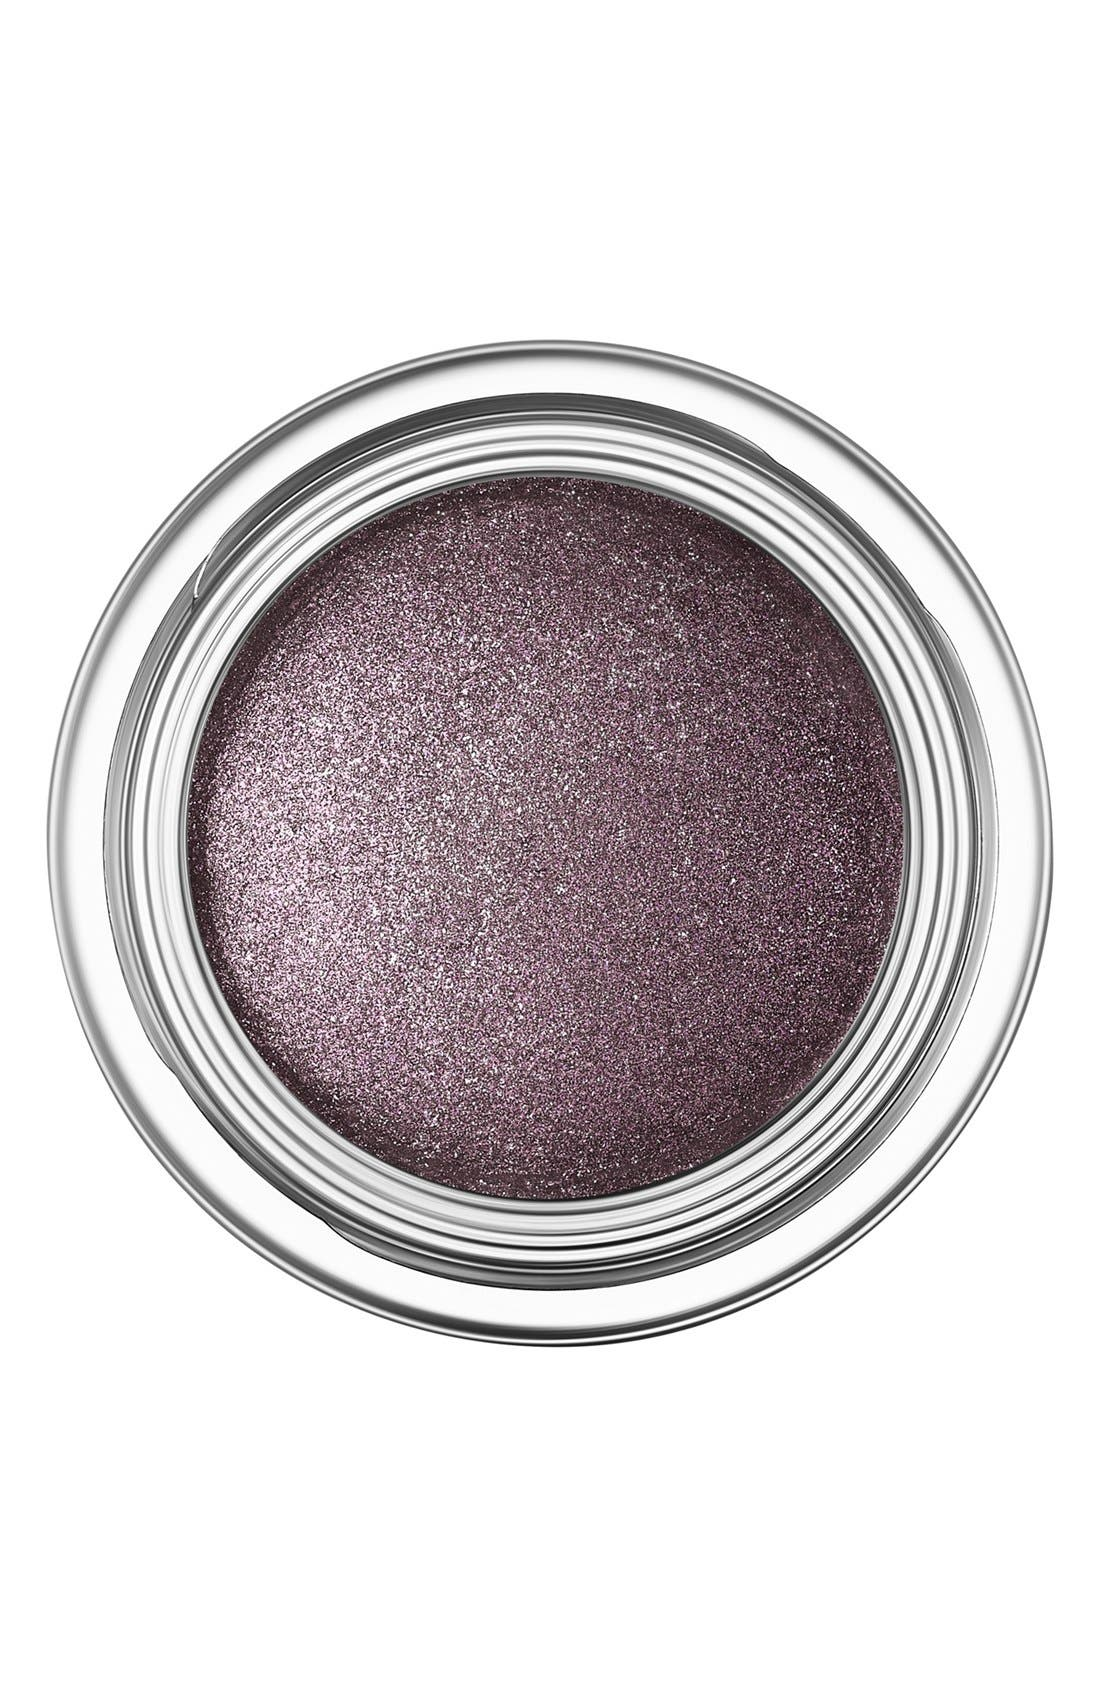 Diorshow Fusion Mono Eyeshadow,                             Main thumbnail 1, color,                             881 HYPNOTIQUE